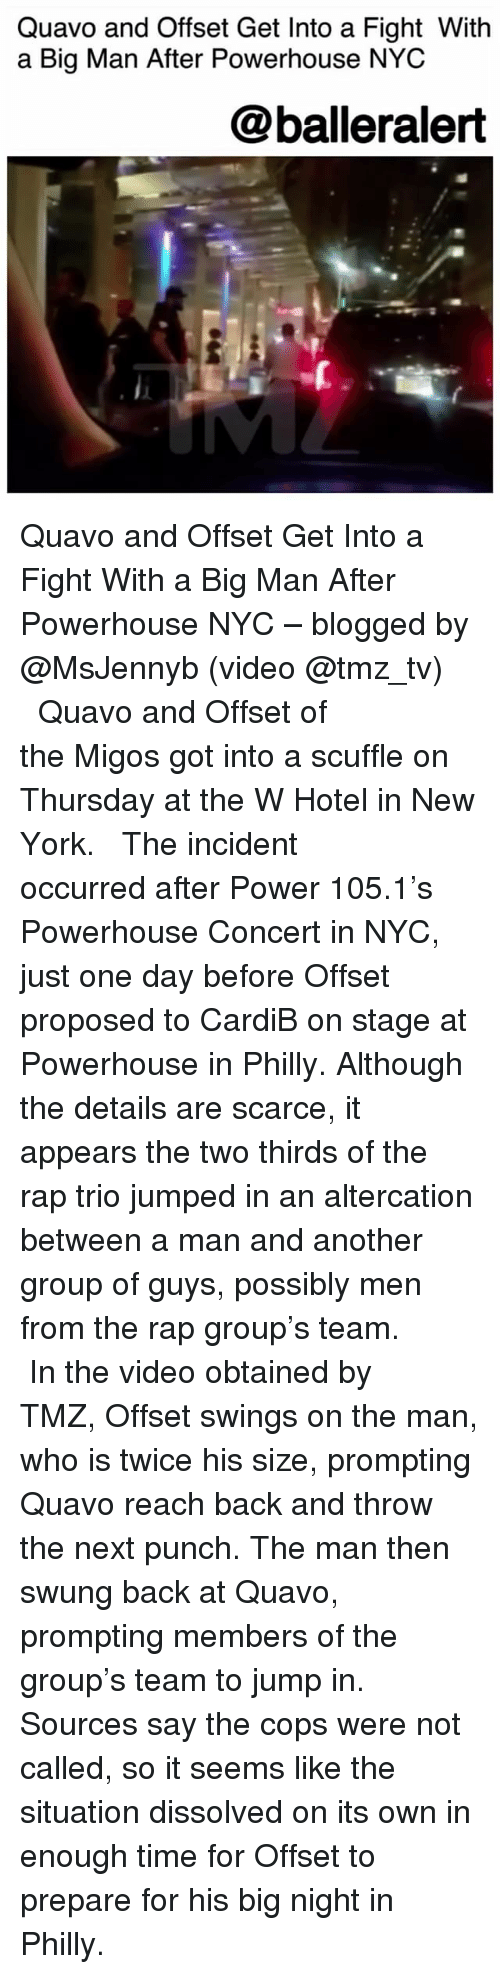 Memes, Migos, and New York: Quavo and Offset Get Into a Fight Witlh  a Big Man After Powerhouse NYC  @balleralert Quavo and Offset Get Into a Fight With a Big Man After Powerhouse NYC – blogged by @MsJennyb (video @tmz_tv) ⠀⠀⠀⠀⠀⠀⠀ ⠀⠀⠀⠀⠀⠀⠀ Quavo and Offset of the Migos got into a scuffle on Thursday at the W Hotel in New York. ⠀⠀⠀⠀⠀⠀⠀ ⠀⠀⠀⠀⠀⠀⠀ The incident occurred after Power 105.1's Powerhouse Concert in NYC, just one day before Offset proposed to CardiB on stage at Powerhouse in Philly. Although the details are scarce, it appears the two thirds of the rap trio jumped in an altercation between a man and another group of guys, possibly men from the rap group's team. ⠀⠀⠀⠀⠀⠀⠀ ⠀⠀⠀⠀⠀⠀⠀ In the video obtained by TMZ, Offset swings on the man, who is twice his size, prompting Quavo reach back and throw the next punch. The man then swung back at Quavo, prompting members of the group's team to jump in. Sources say the cops were not called, so it seems like the situation dissolved on its own in enough time for Offset to prepare for his big night in Philly.